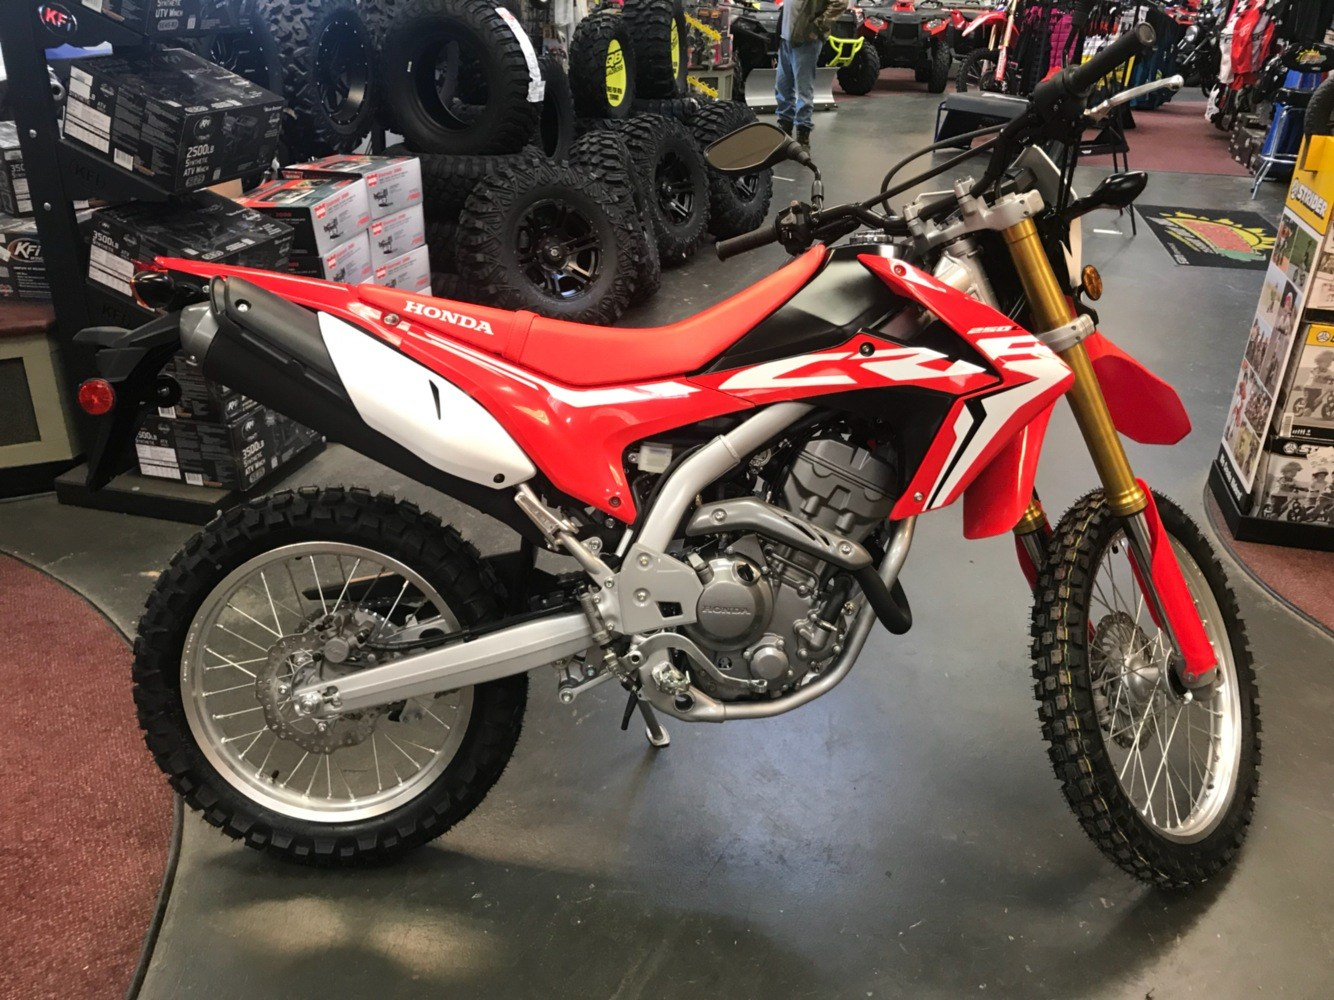 2018 Honda Crf250l Motorcycles Petersburg West Virginia